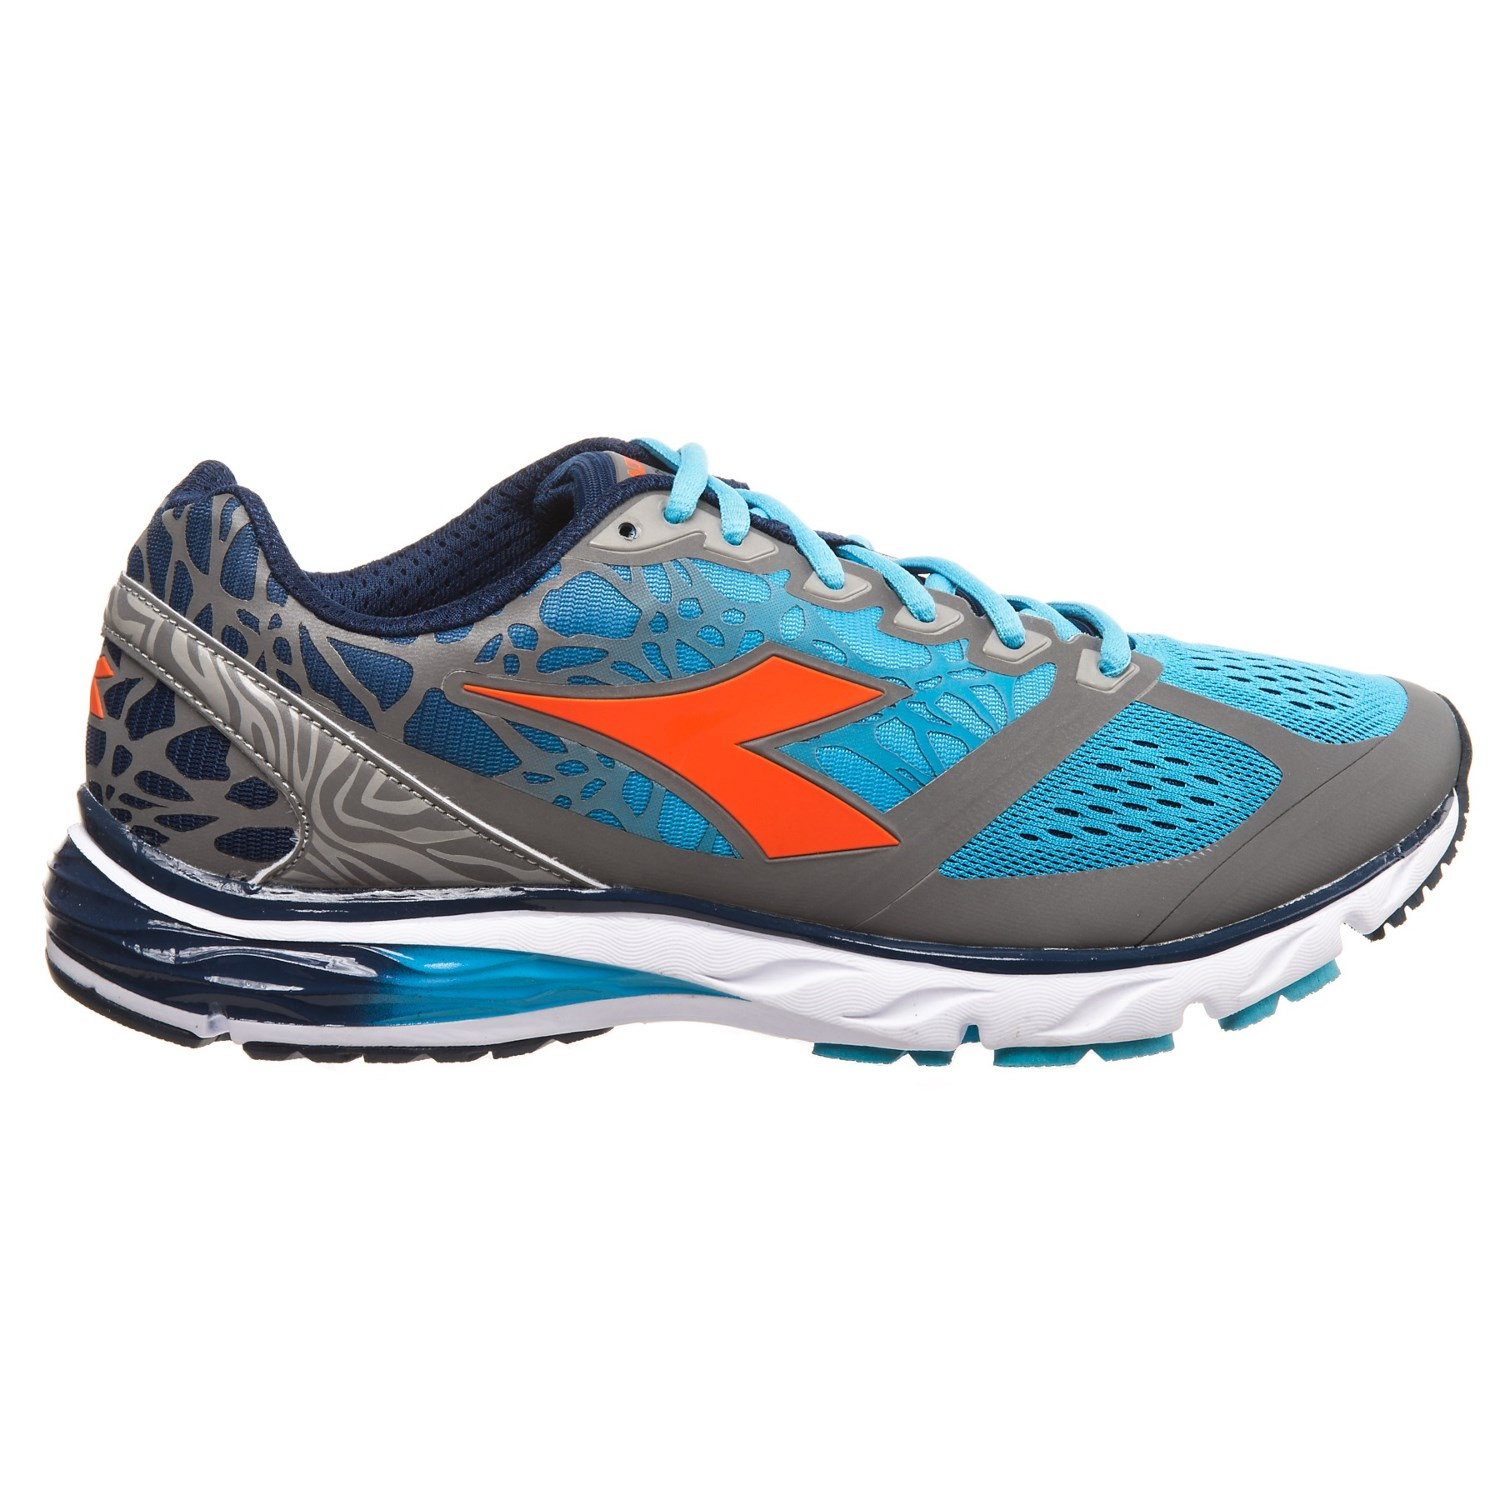 Bedroom Colors For Women Diadora Mythos Blushield 174 Bright Running Shoes For Men